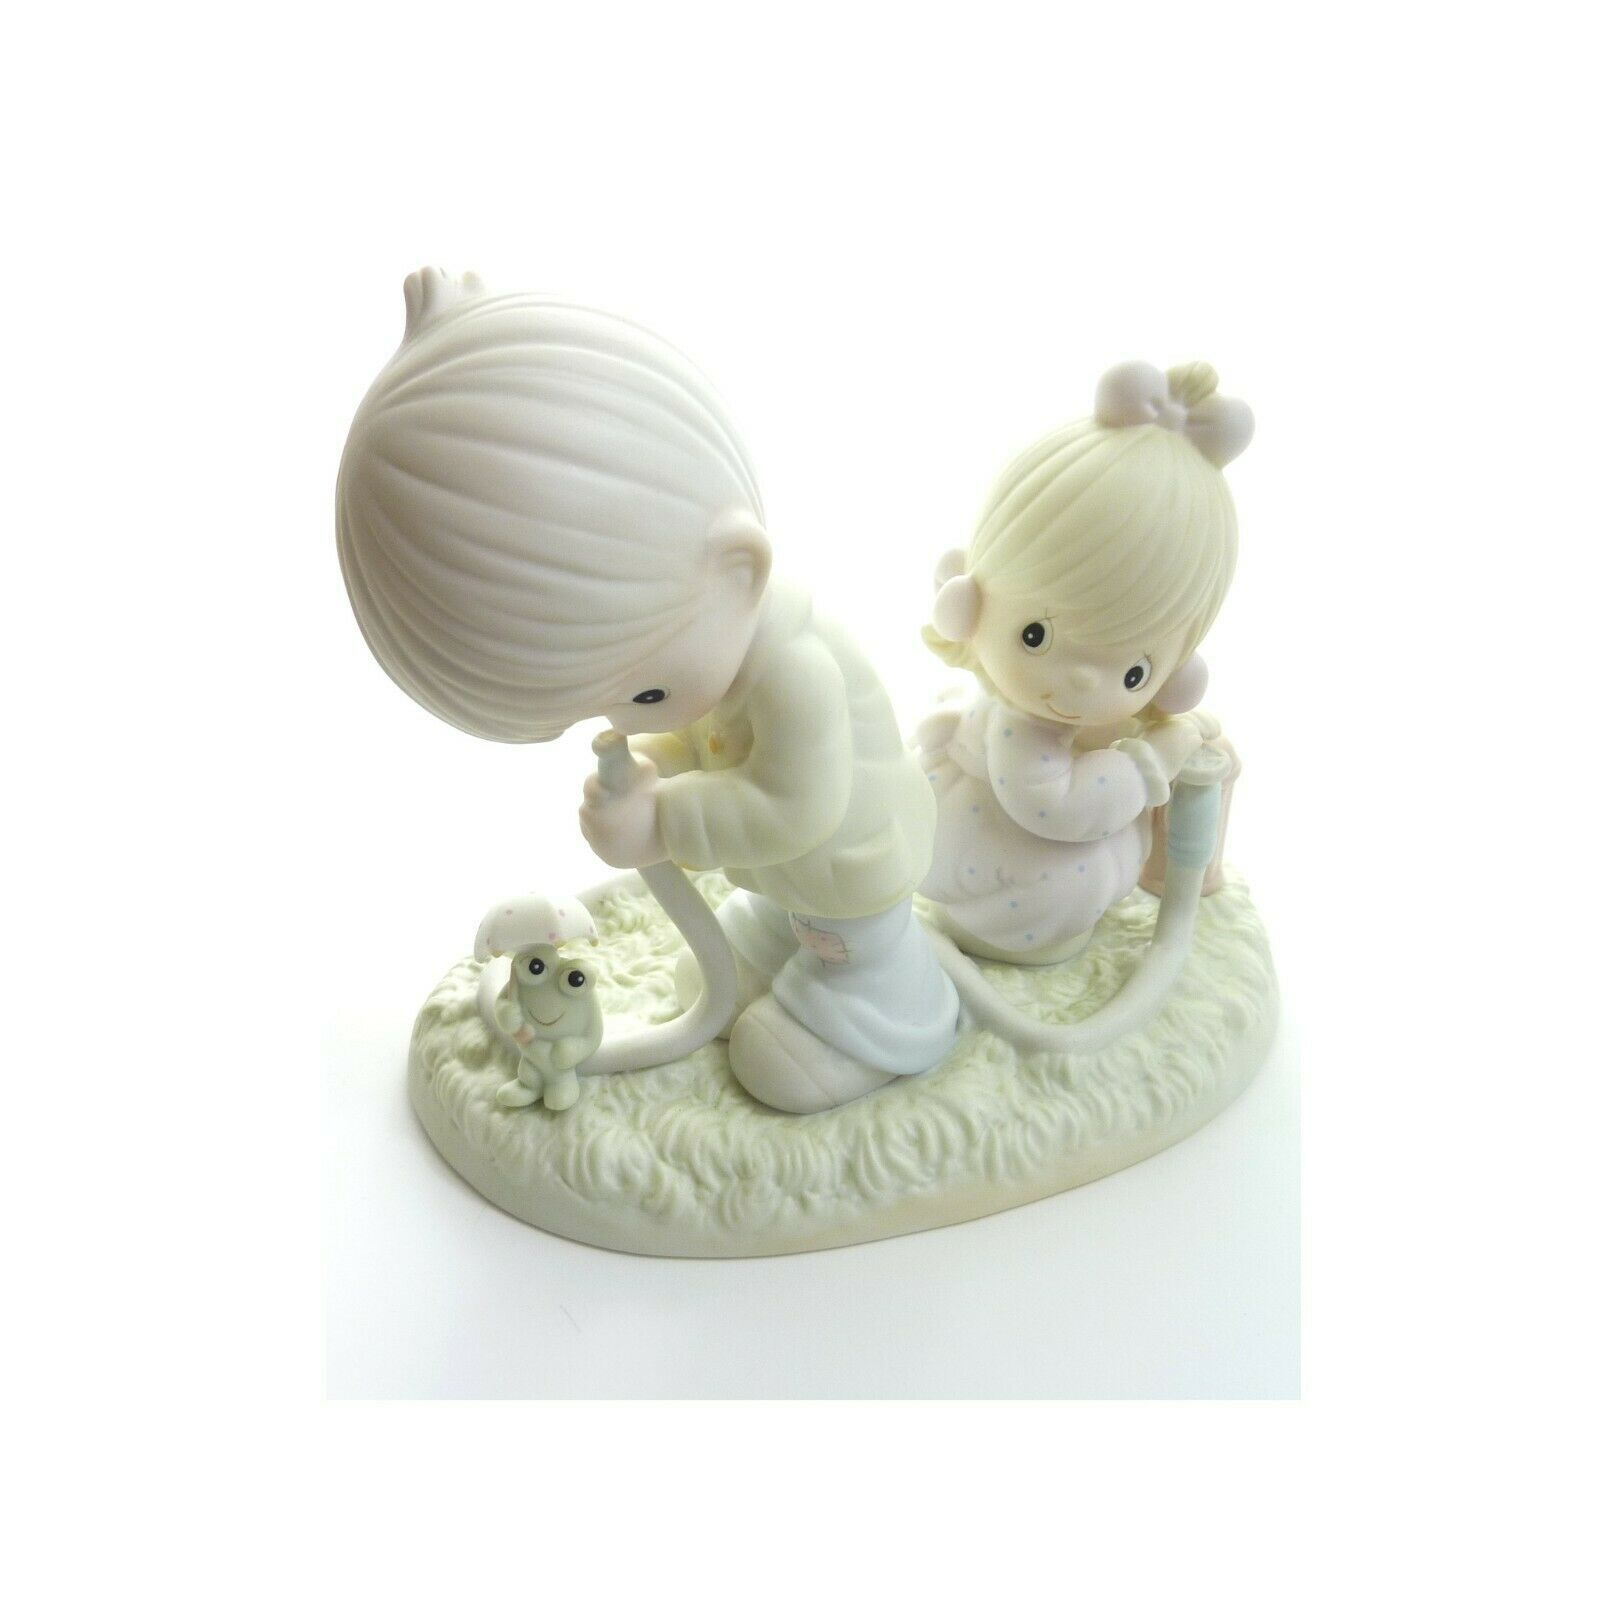 Primary image for Precious Moments There Shall Be Showers Of Blessings Christmas Gift Figure